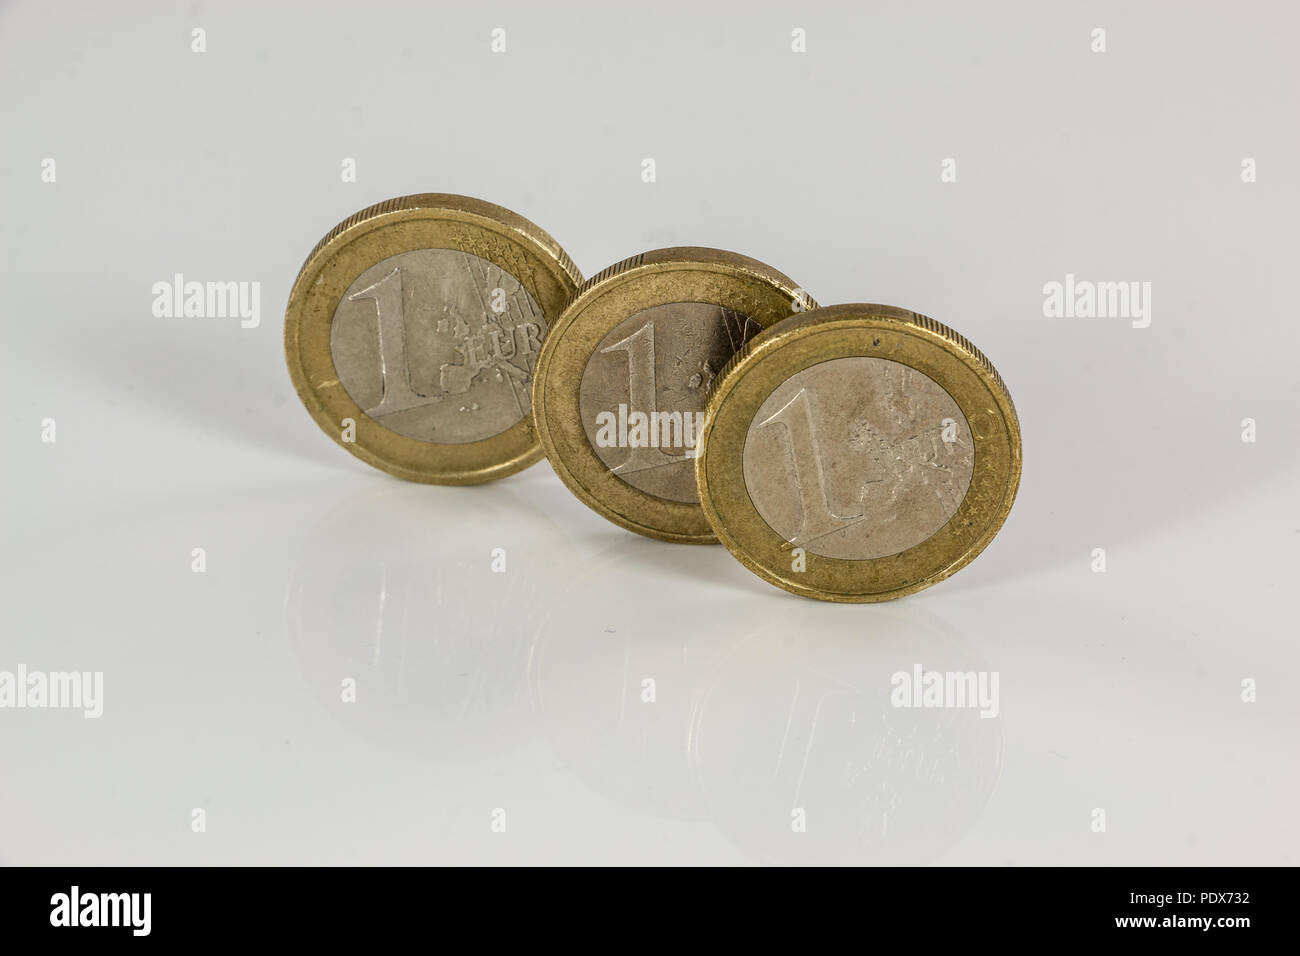 Euro coins on white background with reflections - Stock Image